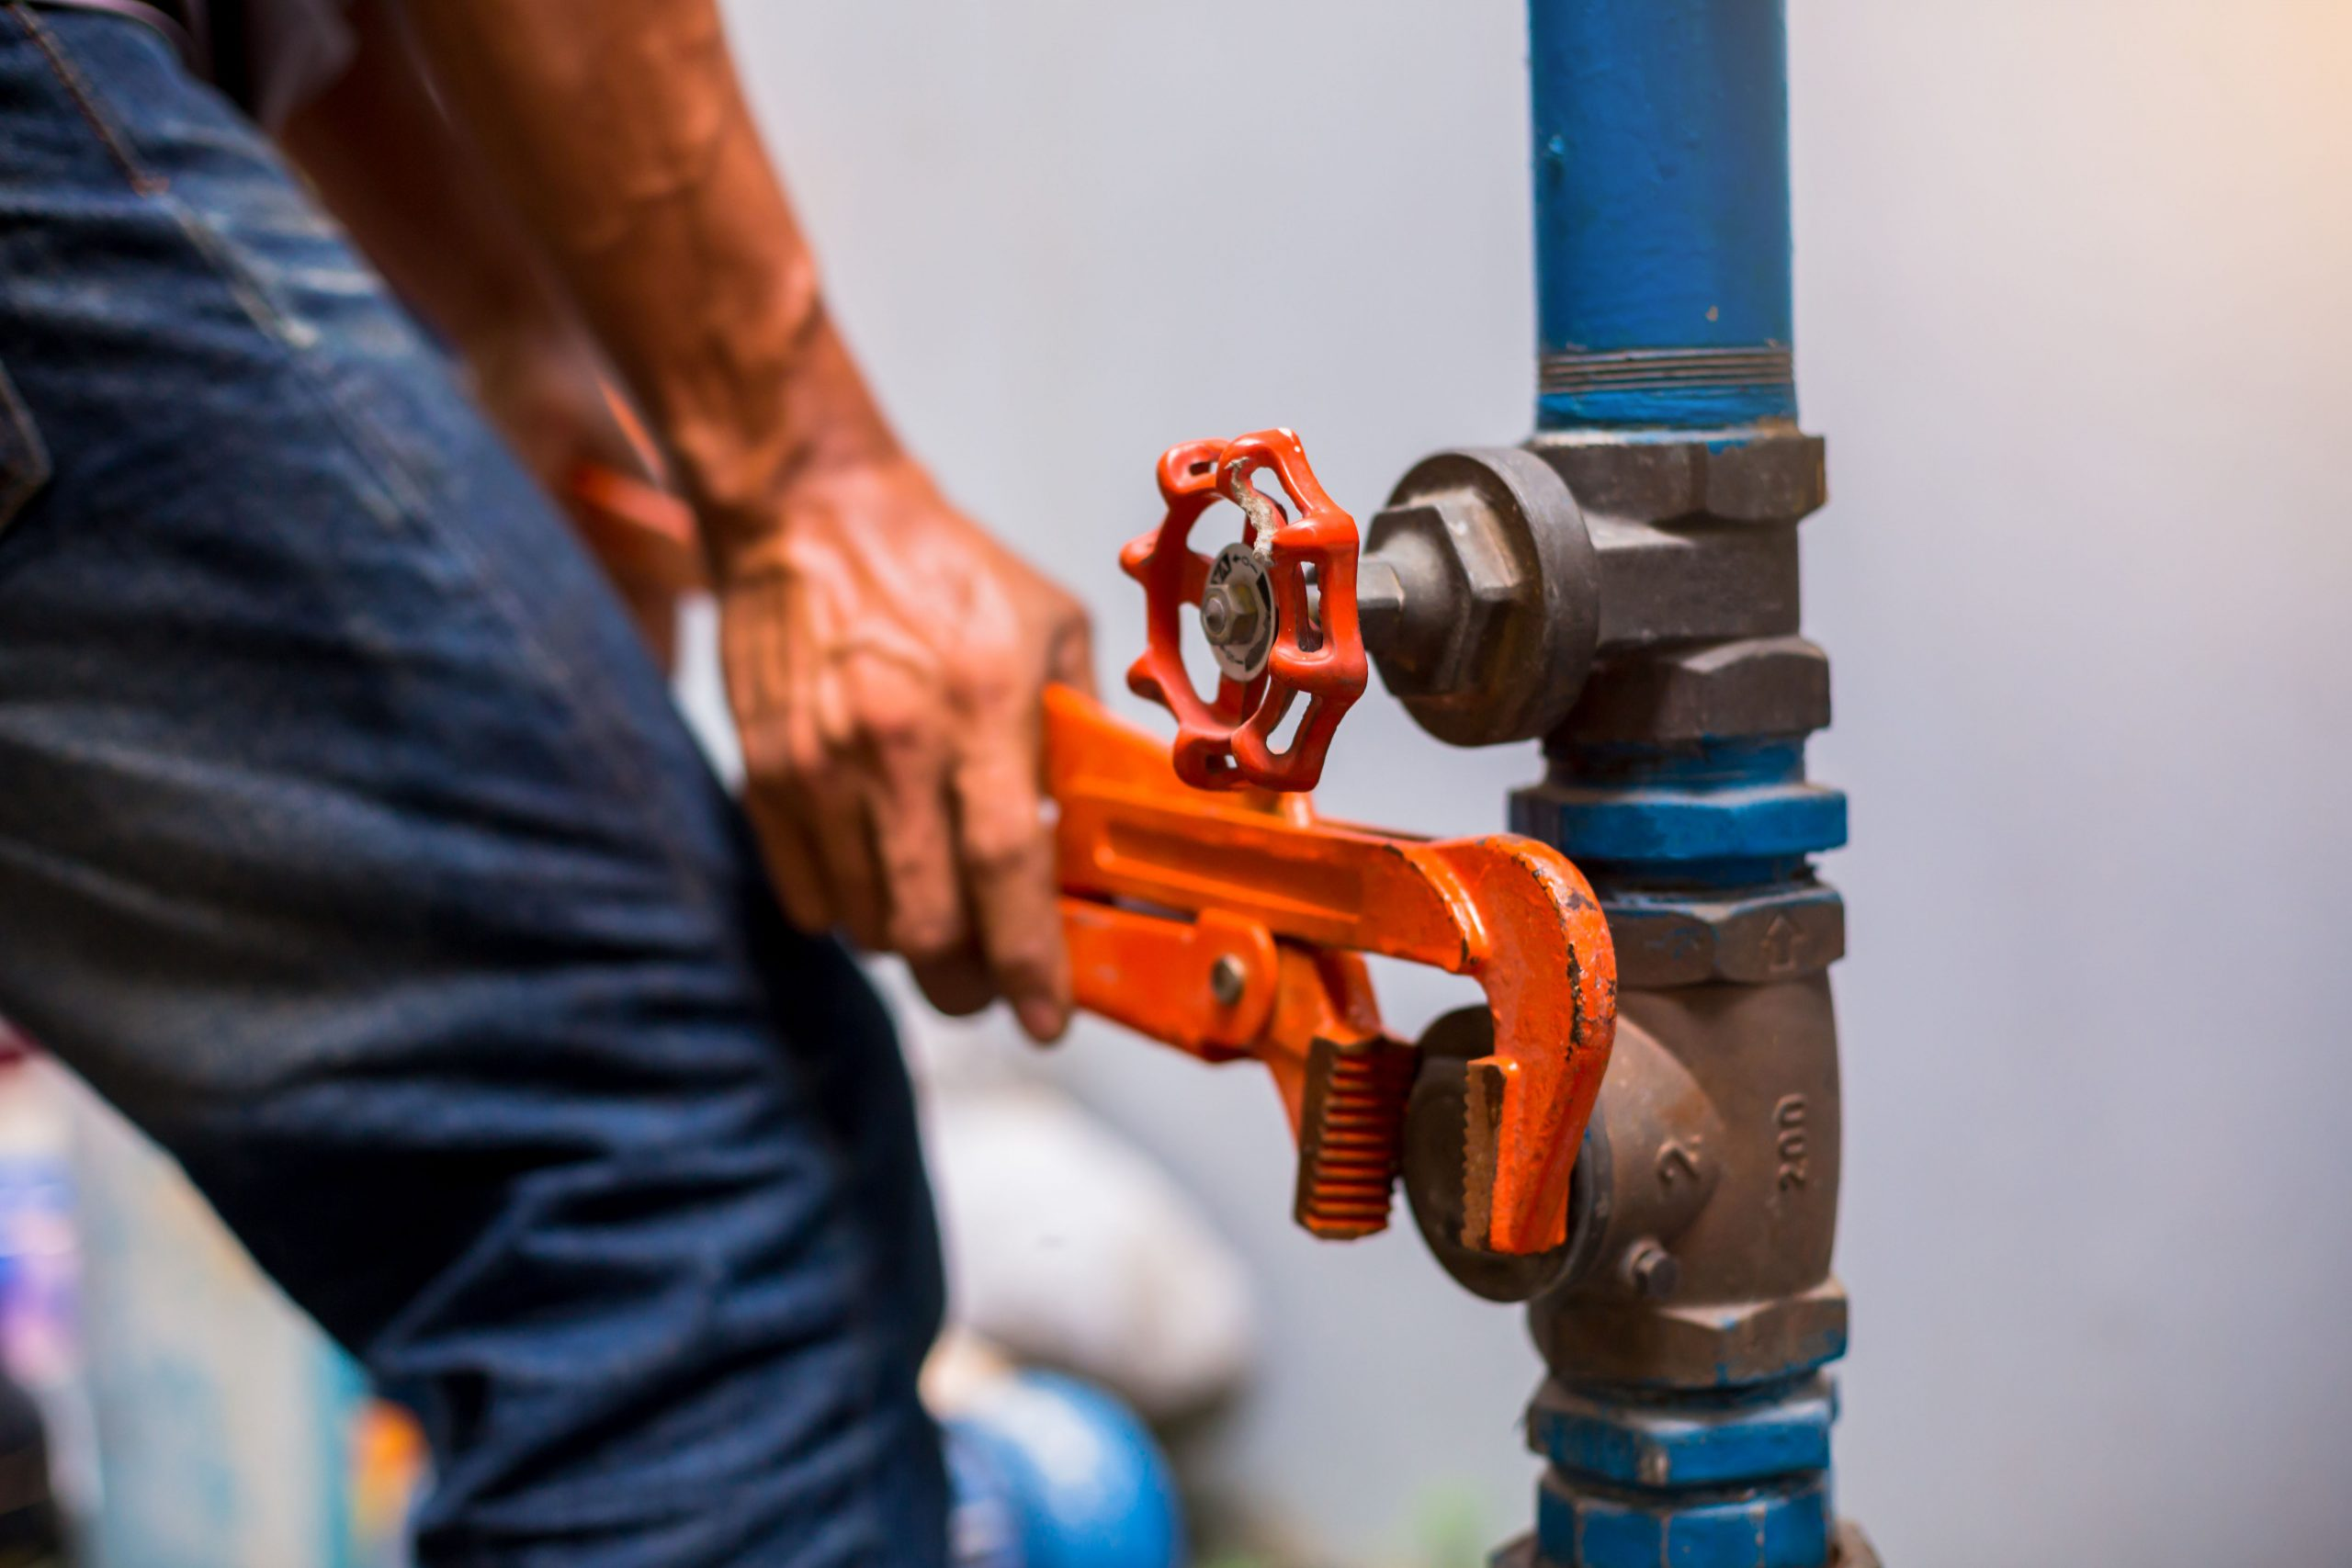 Plumber Using A Wrench To Repair And Remove The Water Supply Pip